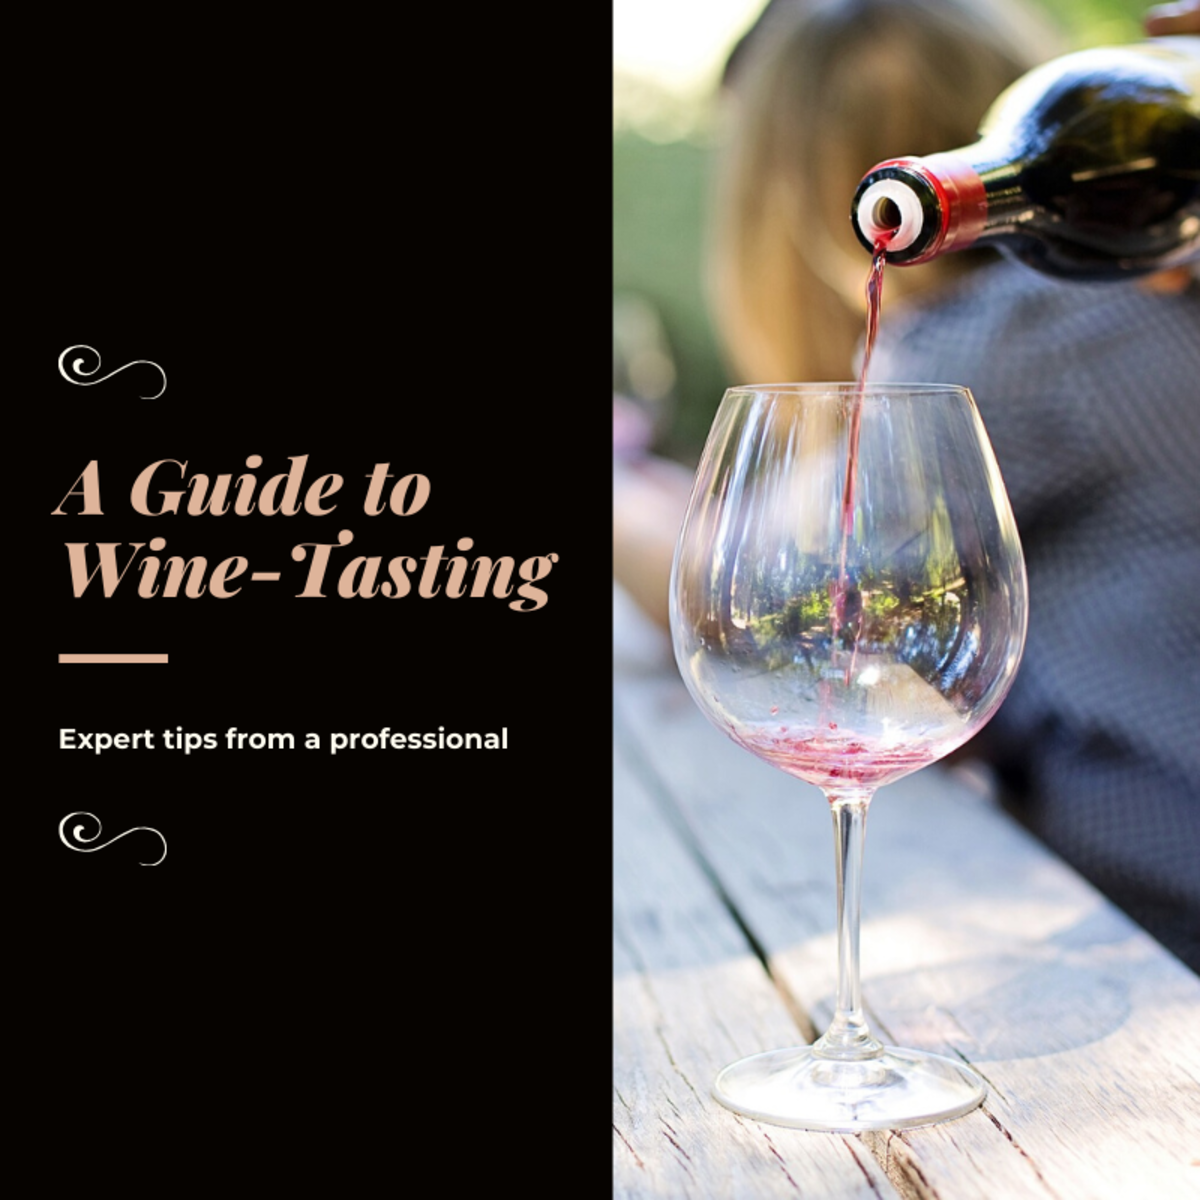 This guide will provide you with all the essentials to knowing how to taste wine and appreciate it to its fullest.